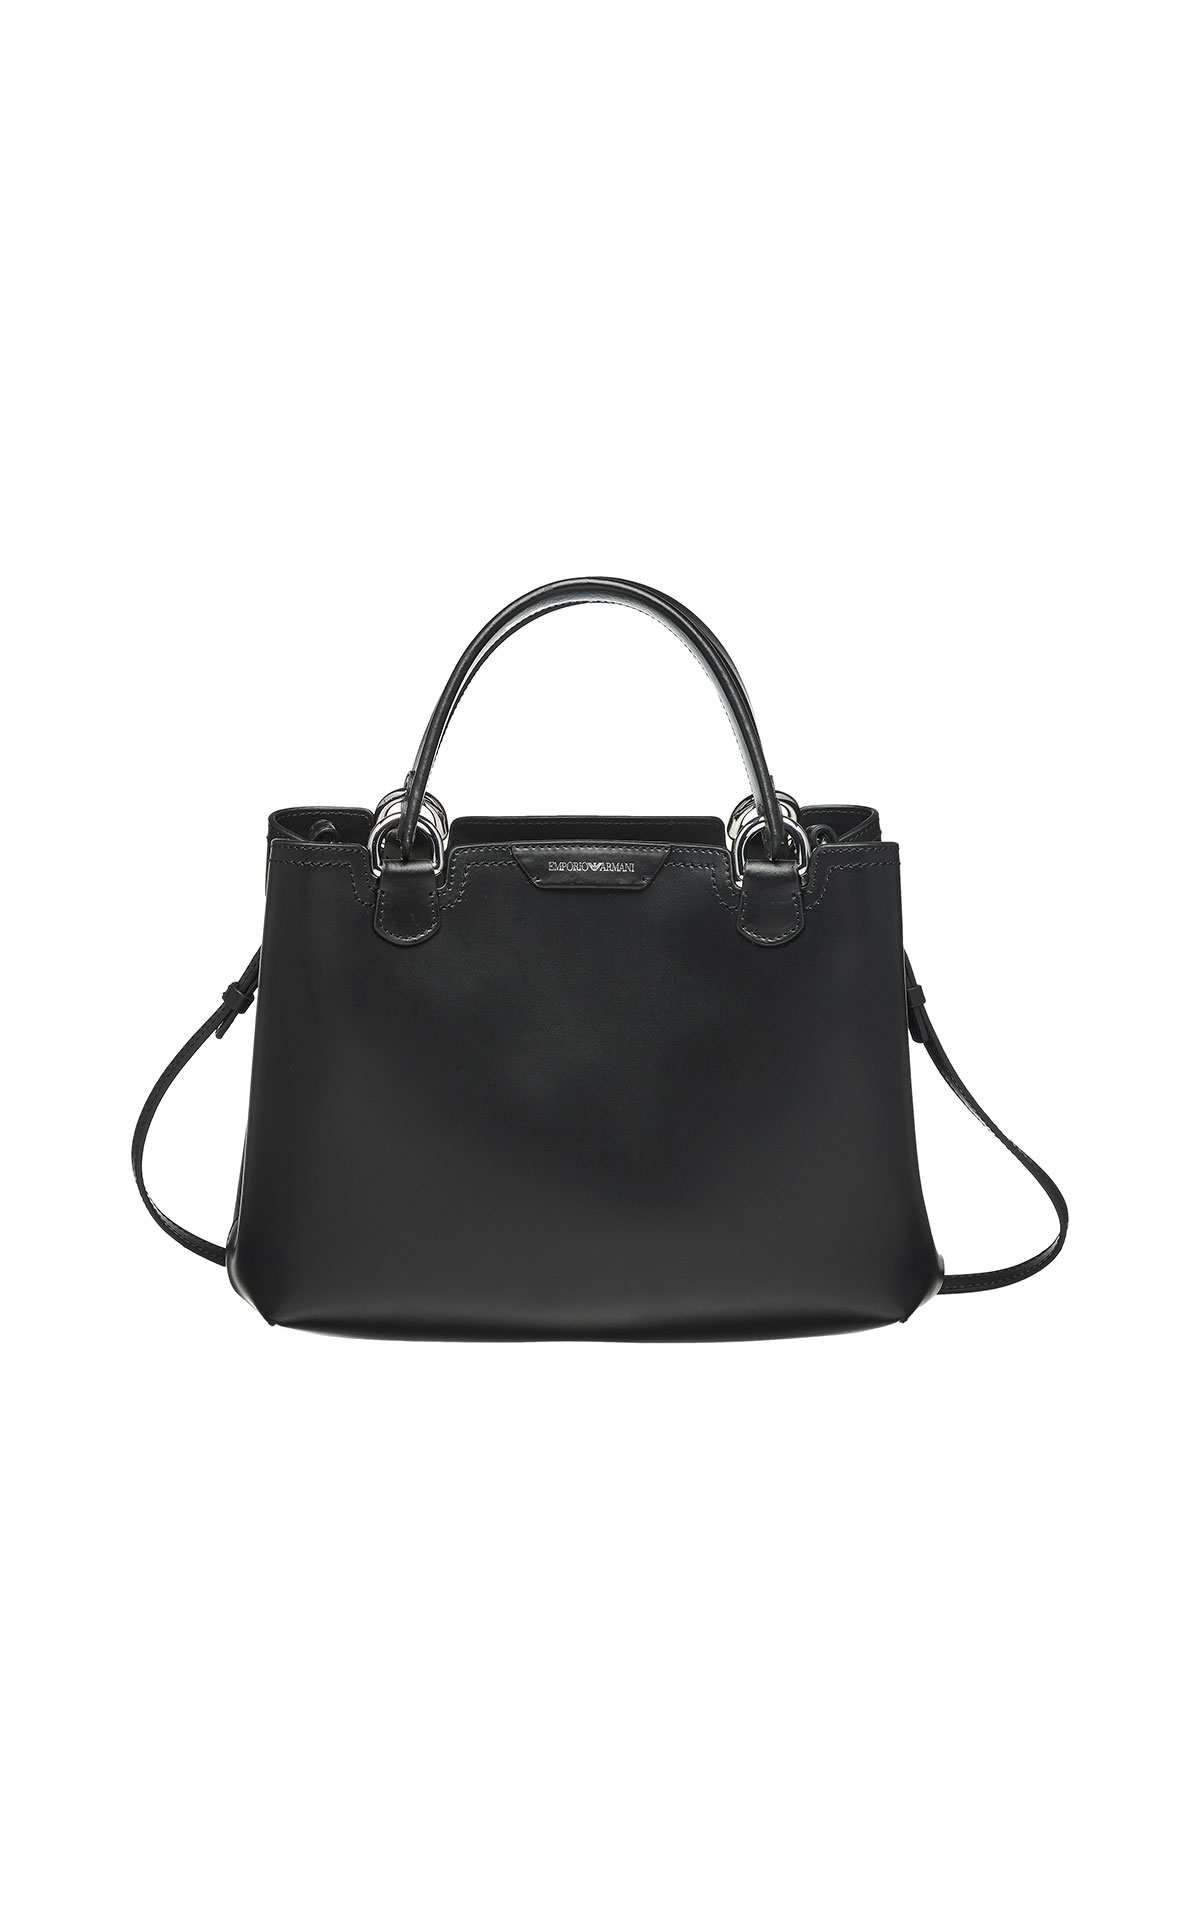 Armani Womens handbag from Bicester Village